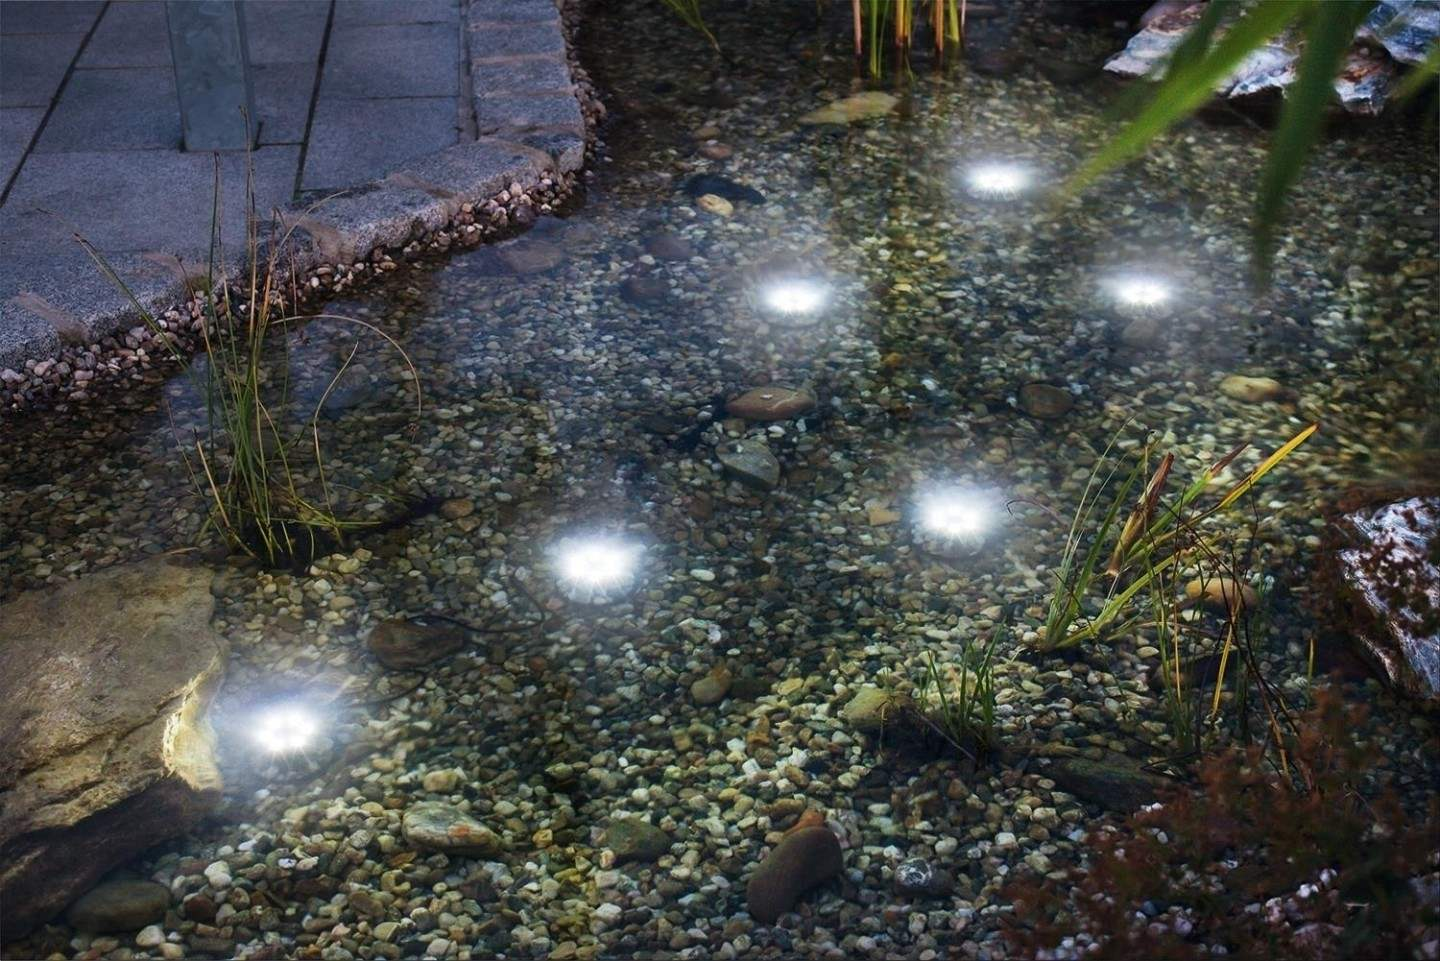 Faretti solari a led immergibili super splash ecoworld for Pompe per laghetti da giardino